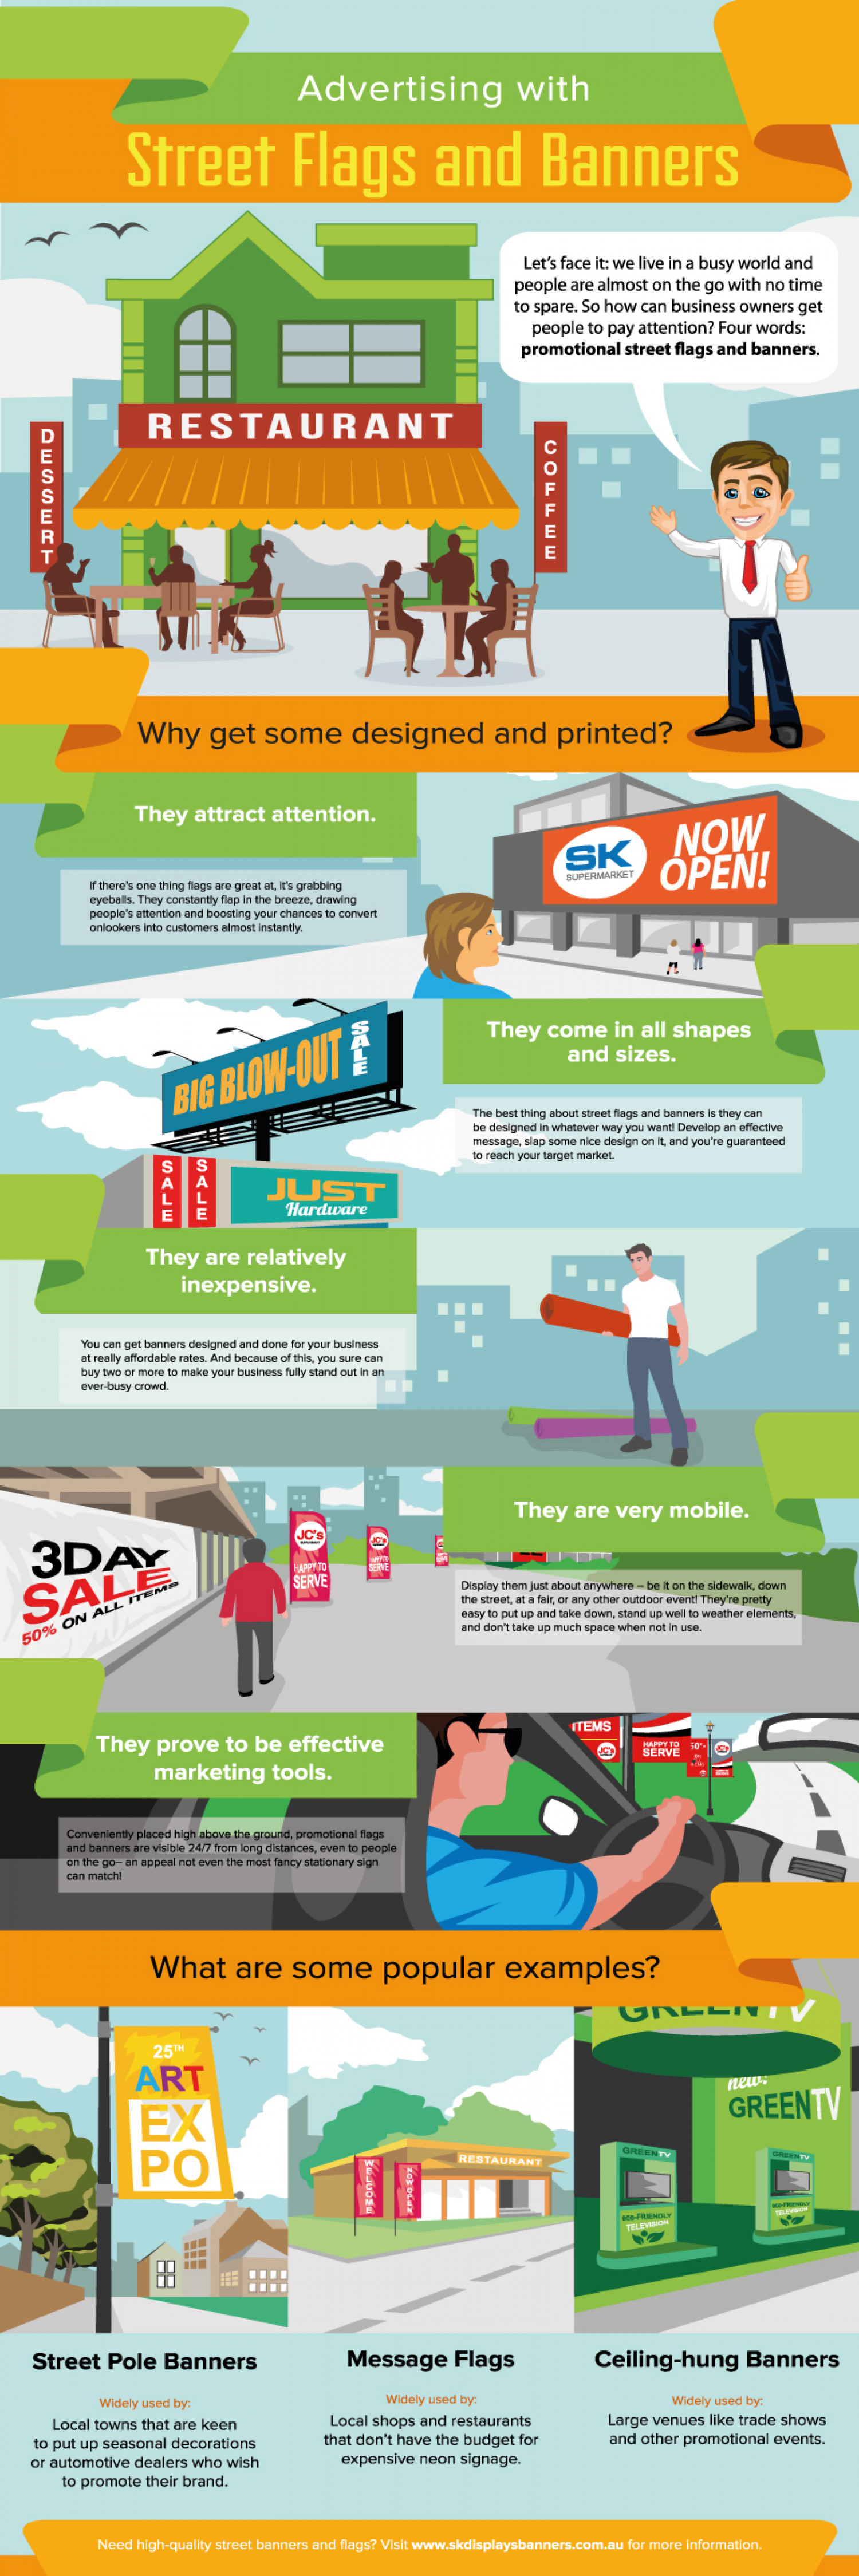 Advertising with Street Flags and Banners Infographic